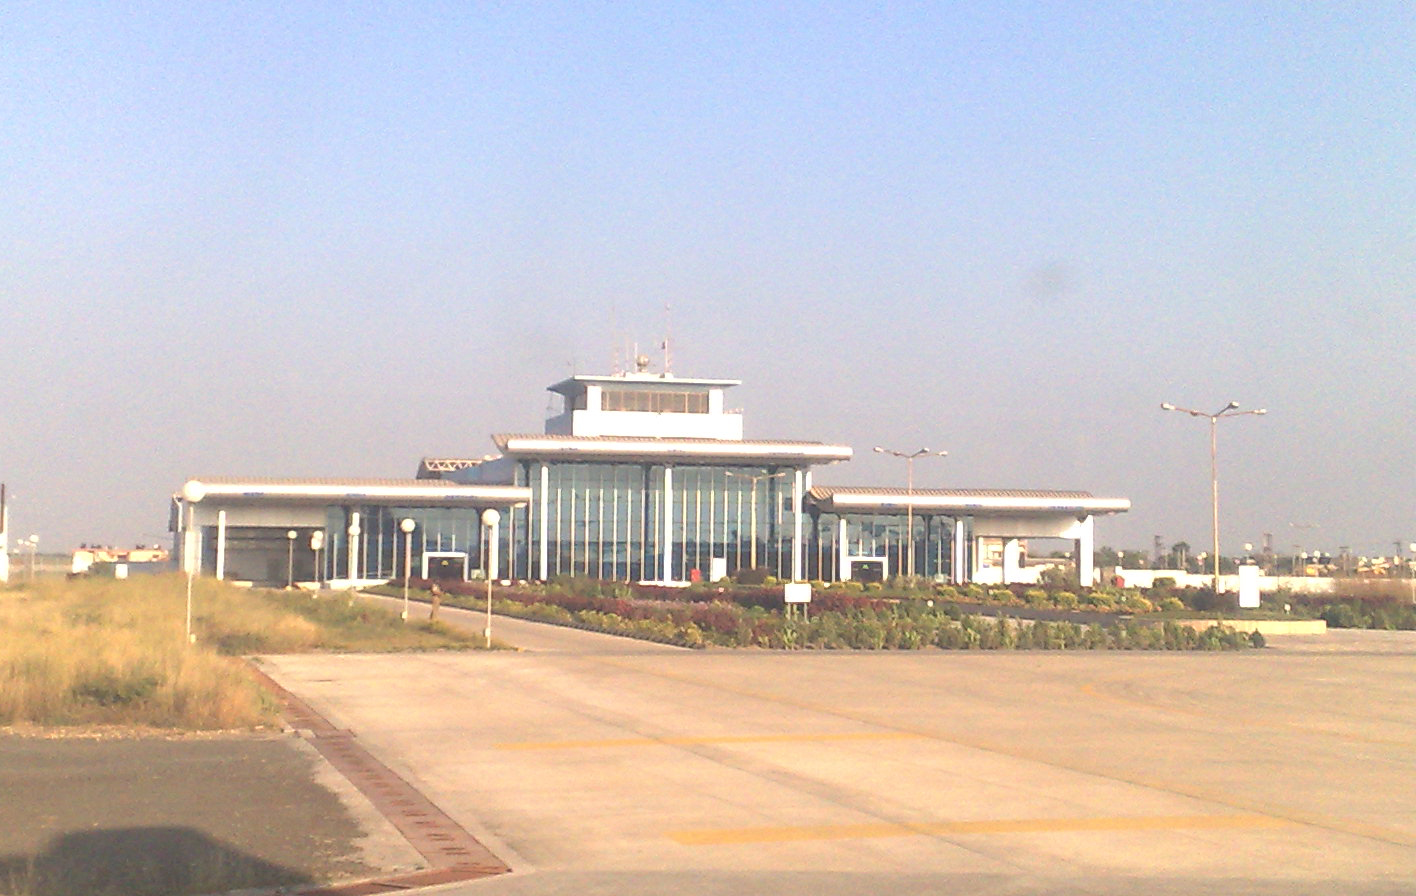 Porbandar India  city pictures gallery : New terminal at Porbandar Airport